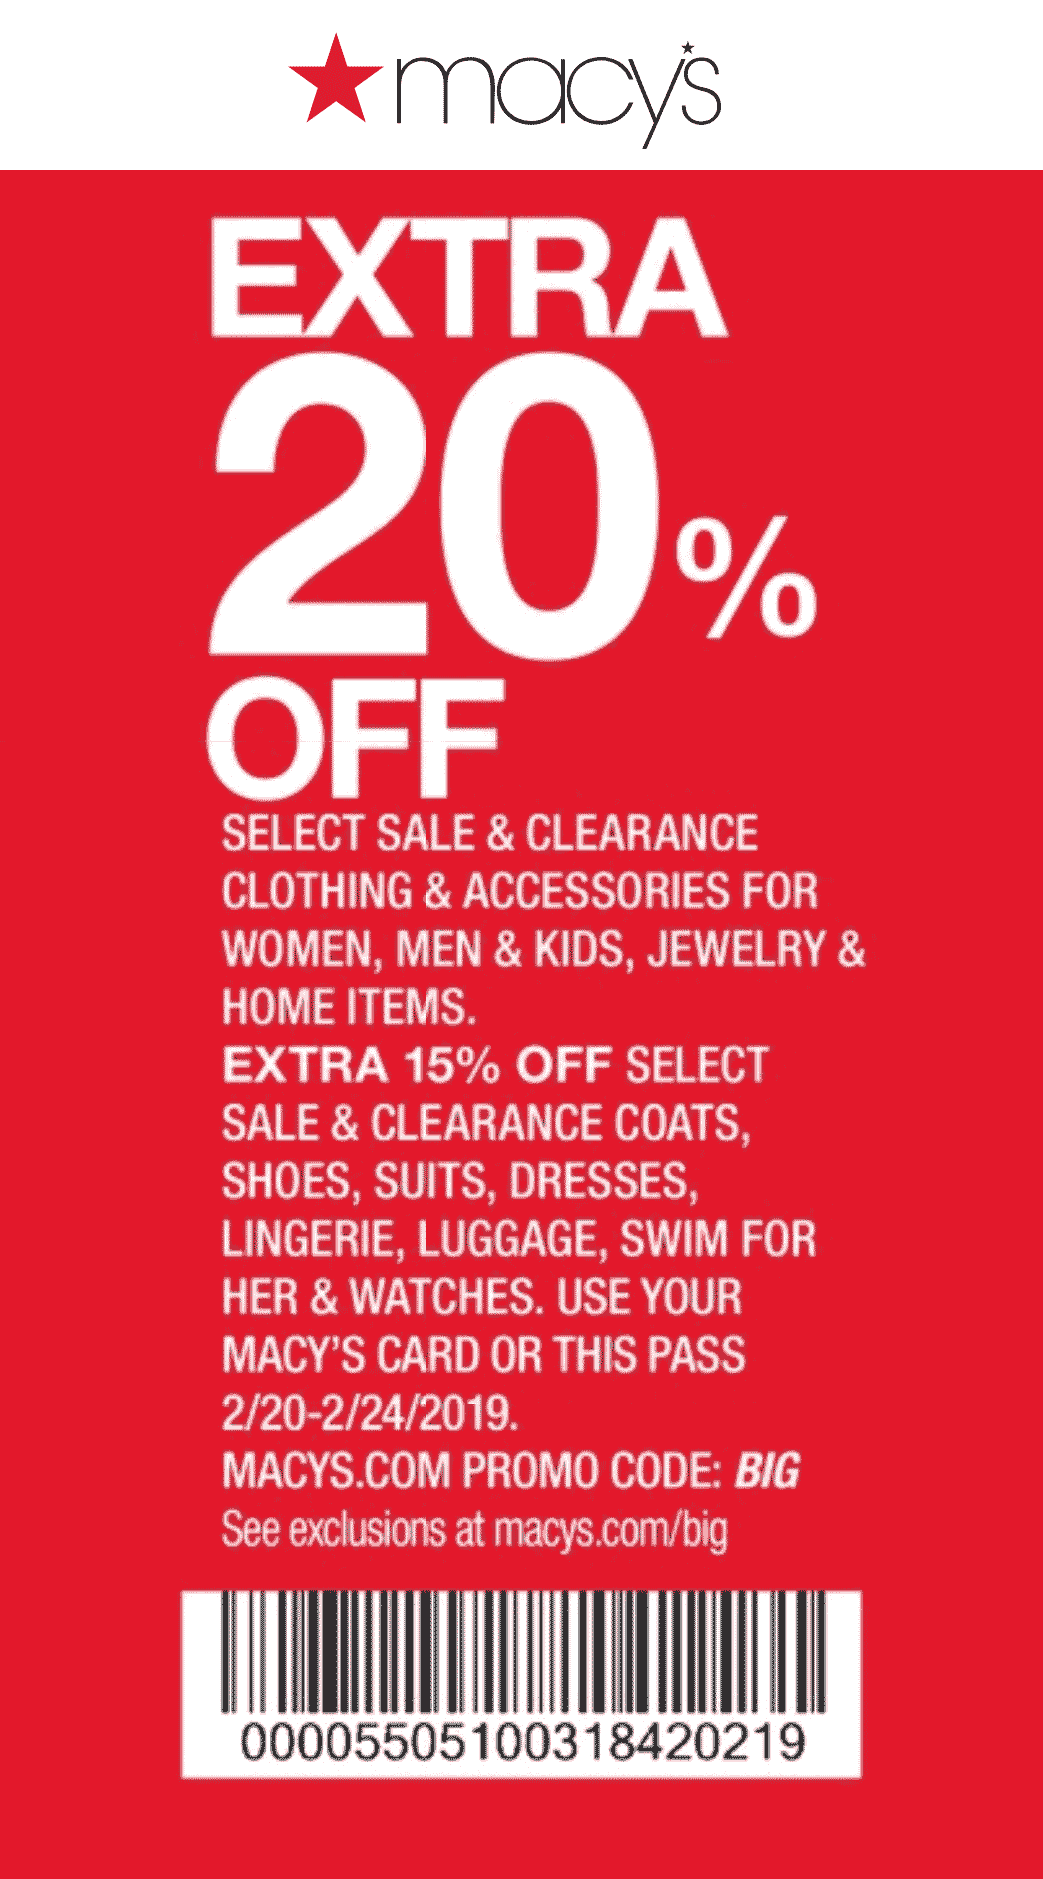 Macys Coupon January 2020 Extra 20% off at Macys, or online via promo code BIG